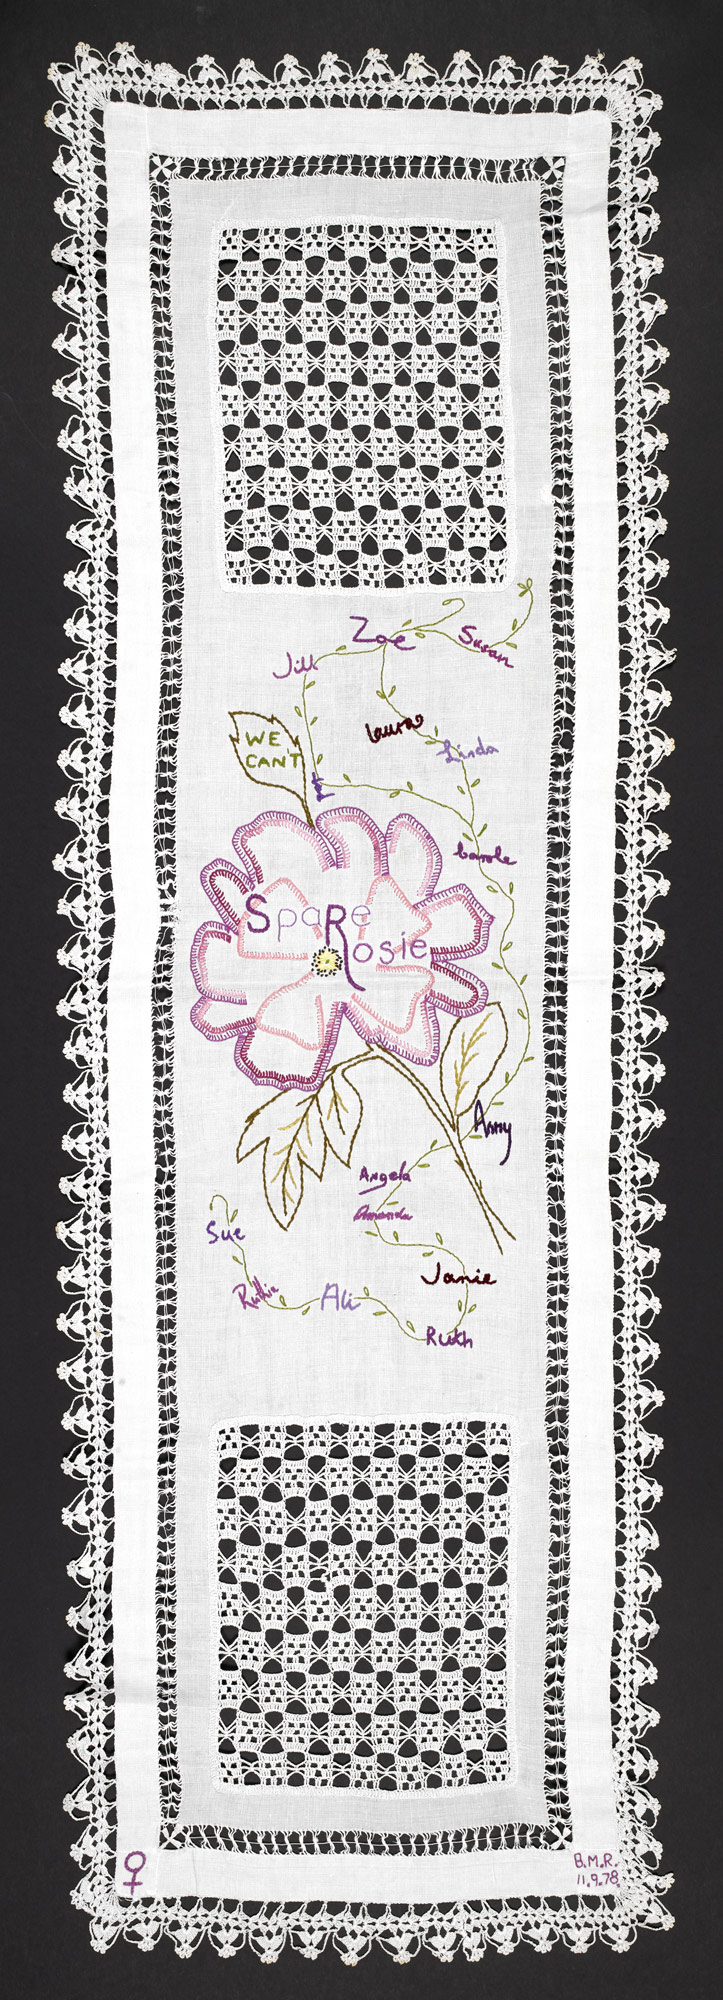 Rosie Parker embroidered table runner